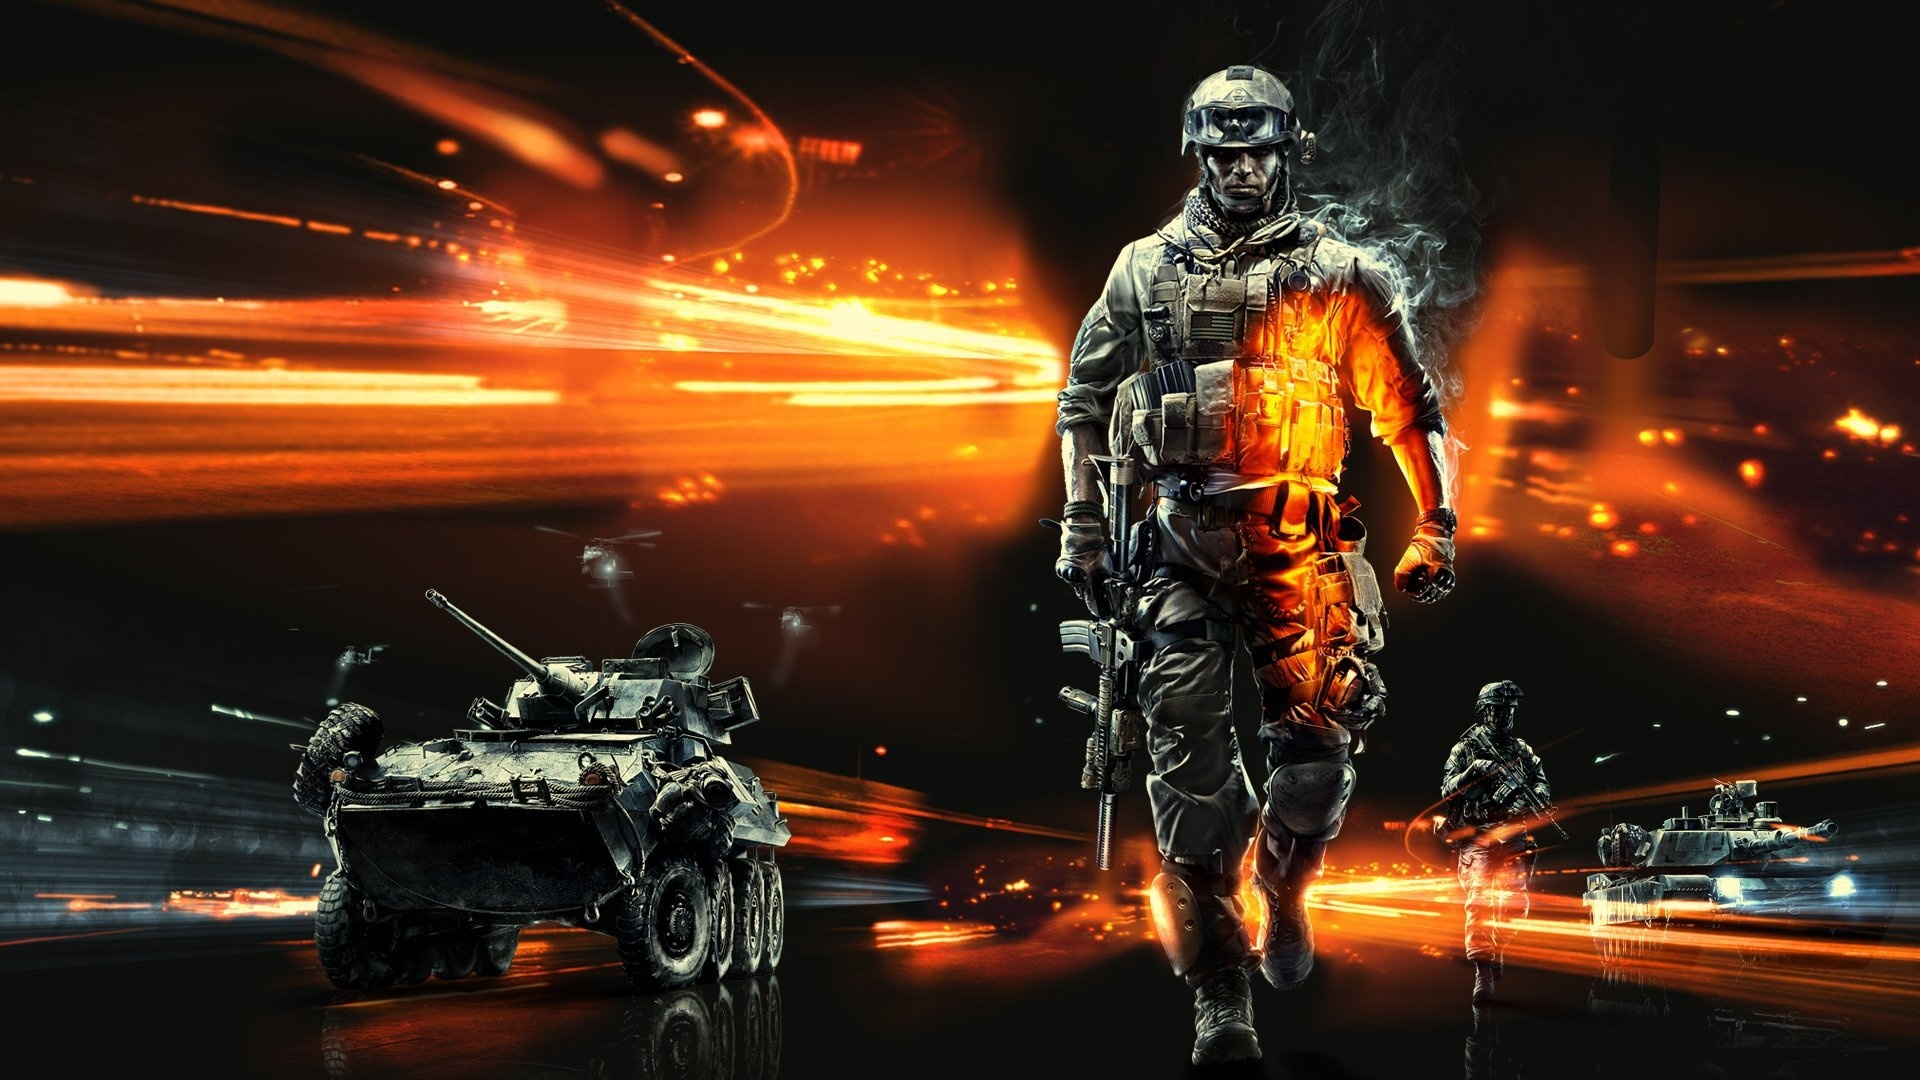 Battlefield 4 wallpapers best wallpapers for Wallpaper three